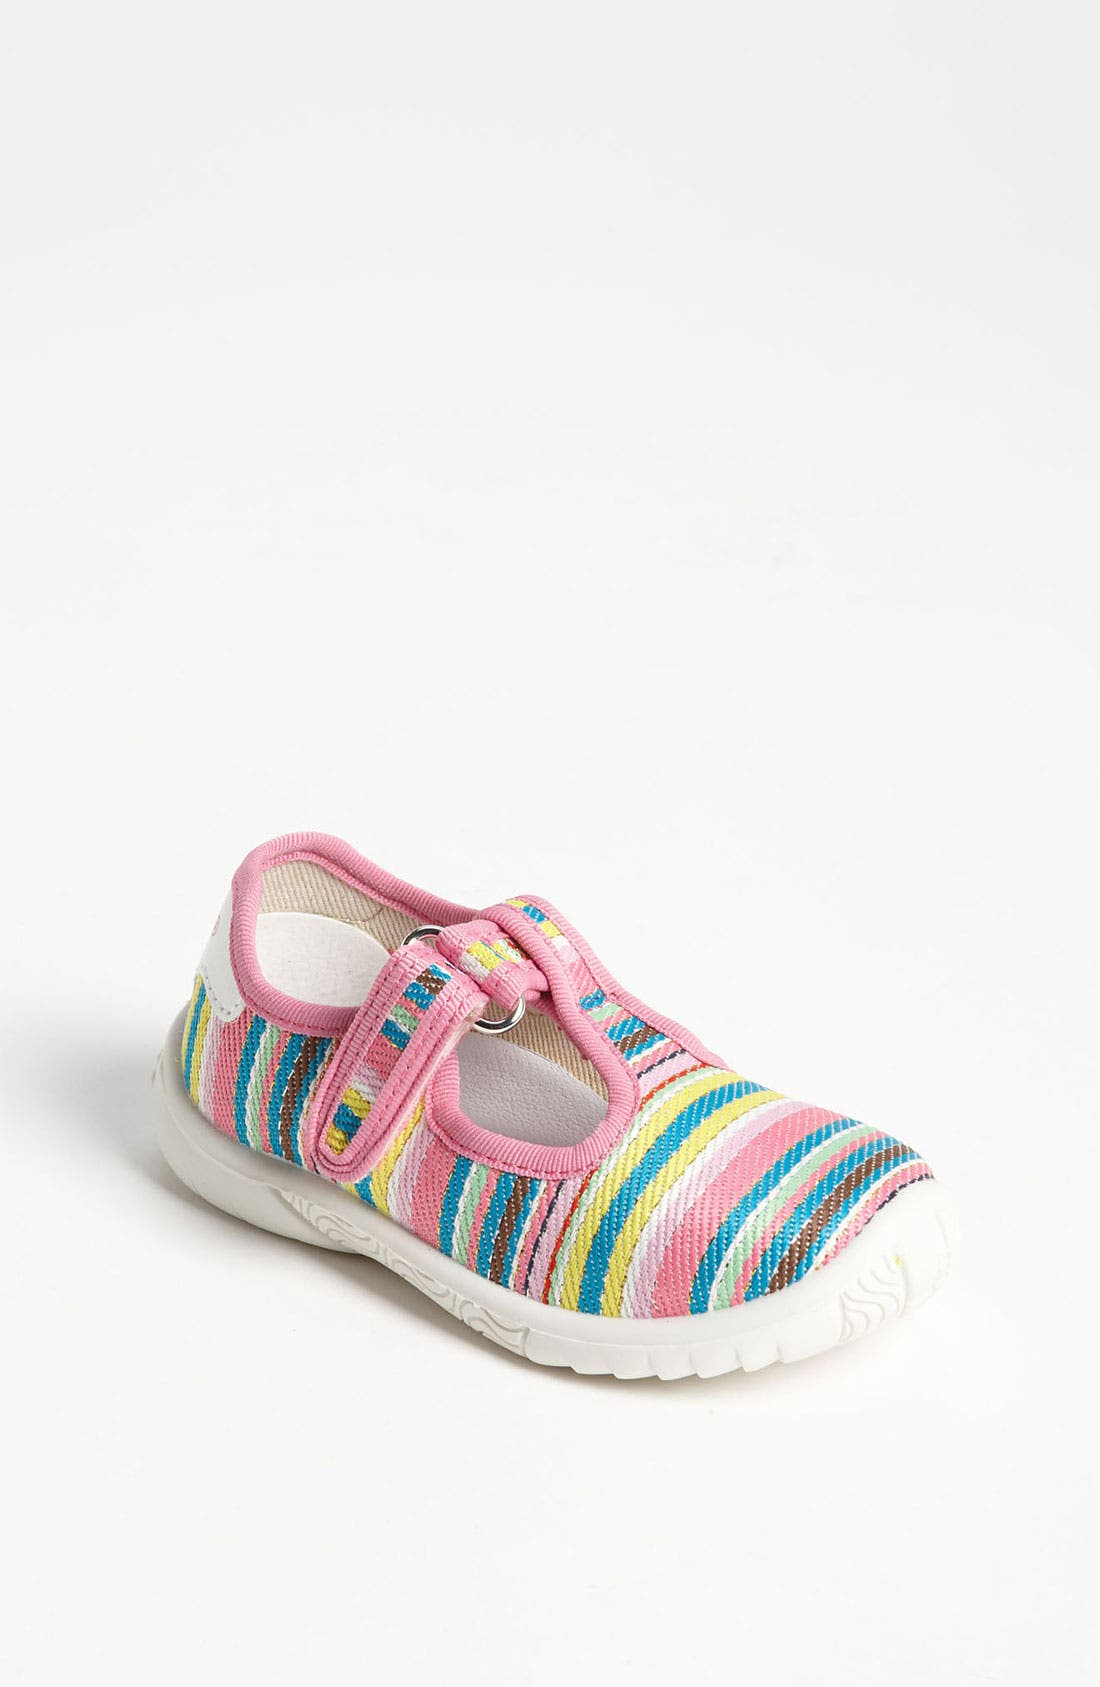 Alternate Image 1 Selected - Naturino '7477' Mary Jane Sneaker (Baby & Walker)